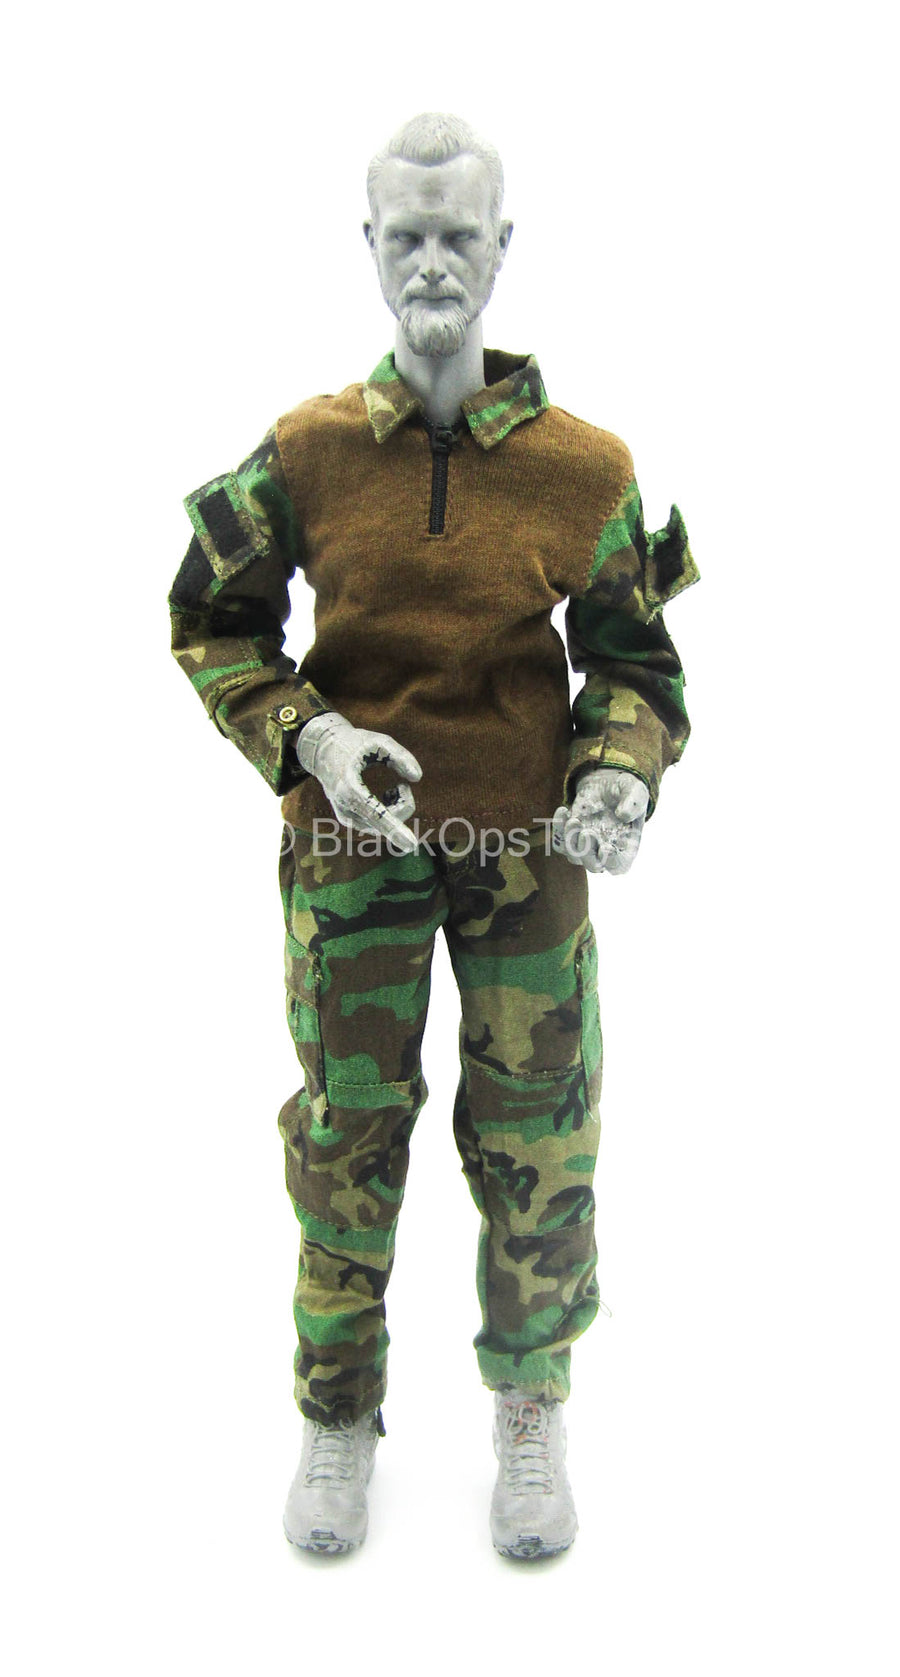 U.S. Army Green Beret ODA721 - Woodland Uniform Set